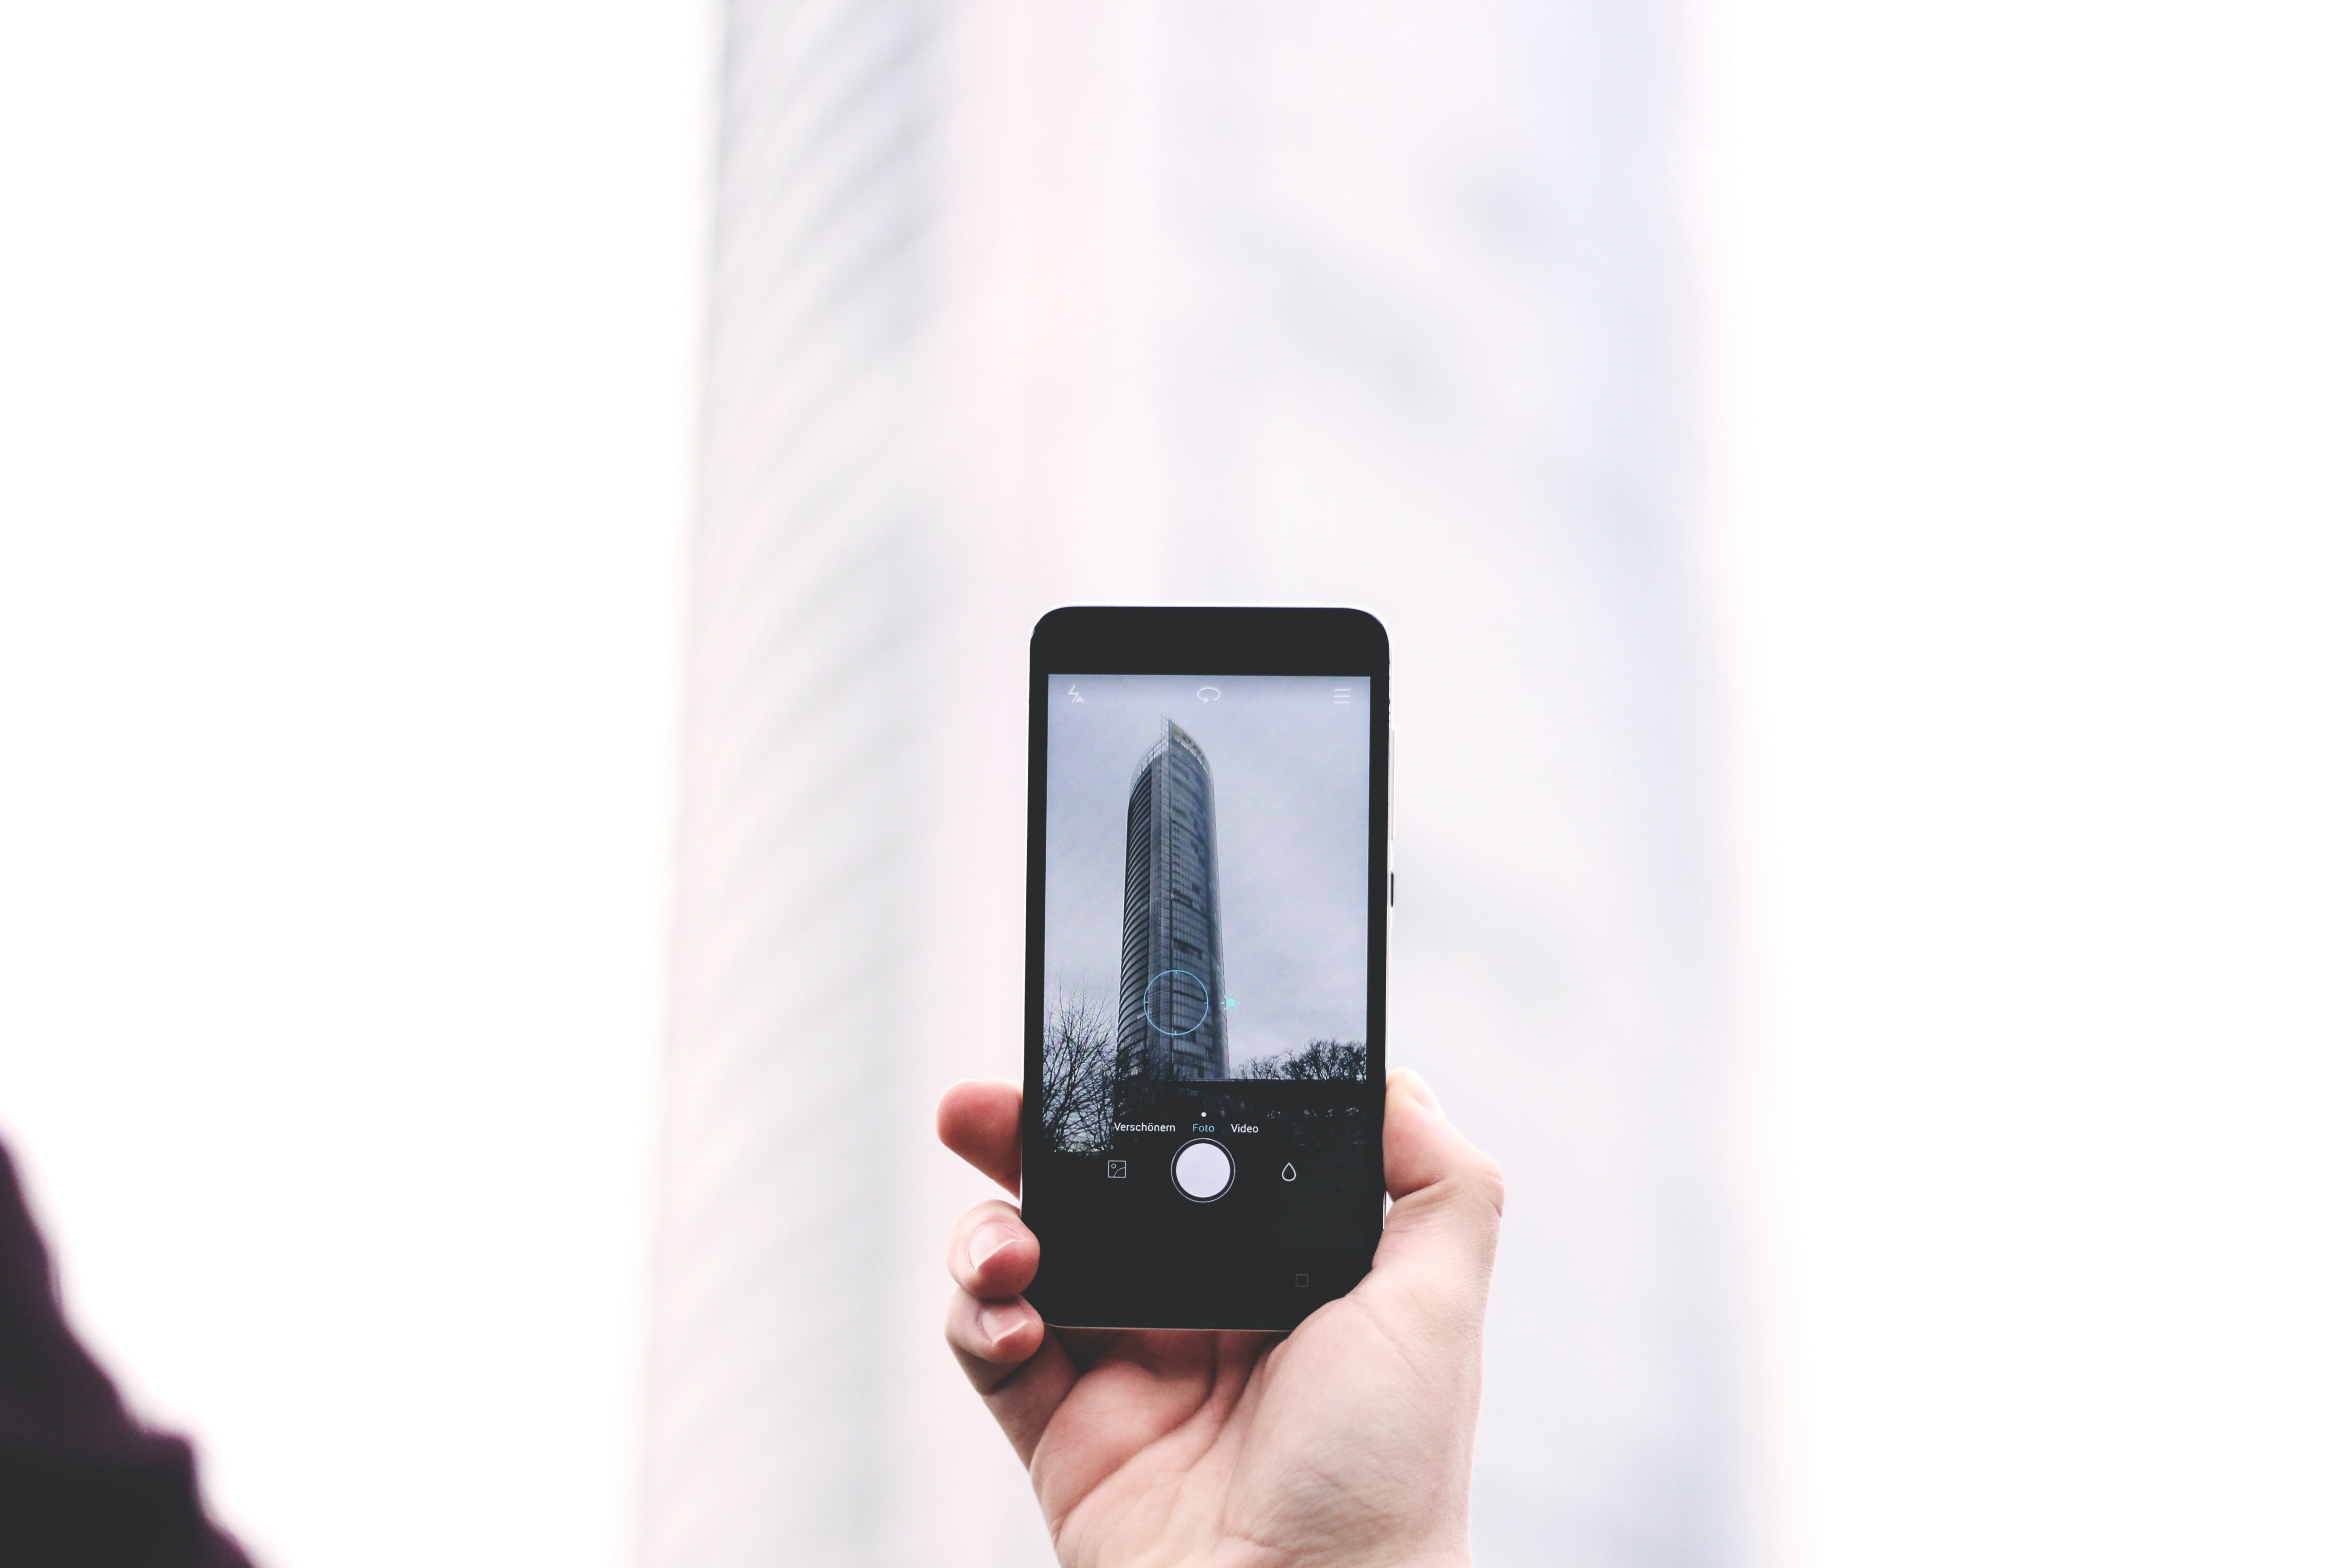 shallow focus photography of person taking picture of glass tower at smartphone